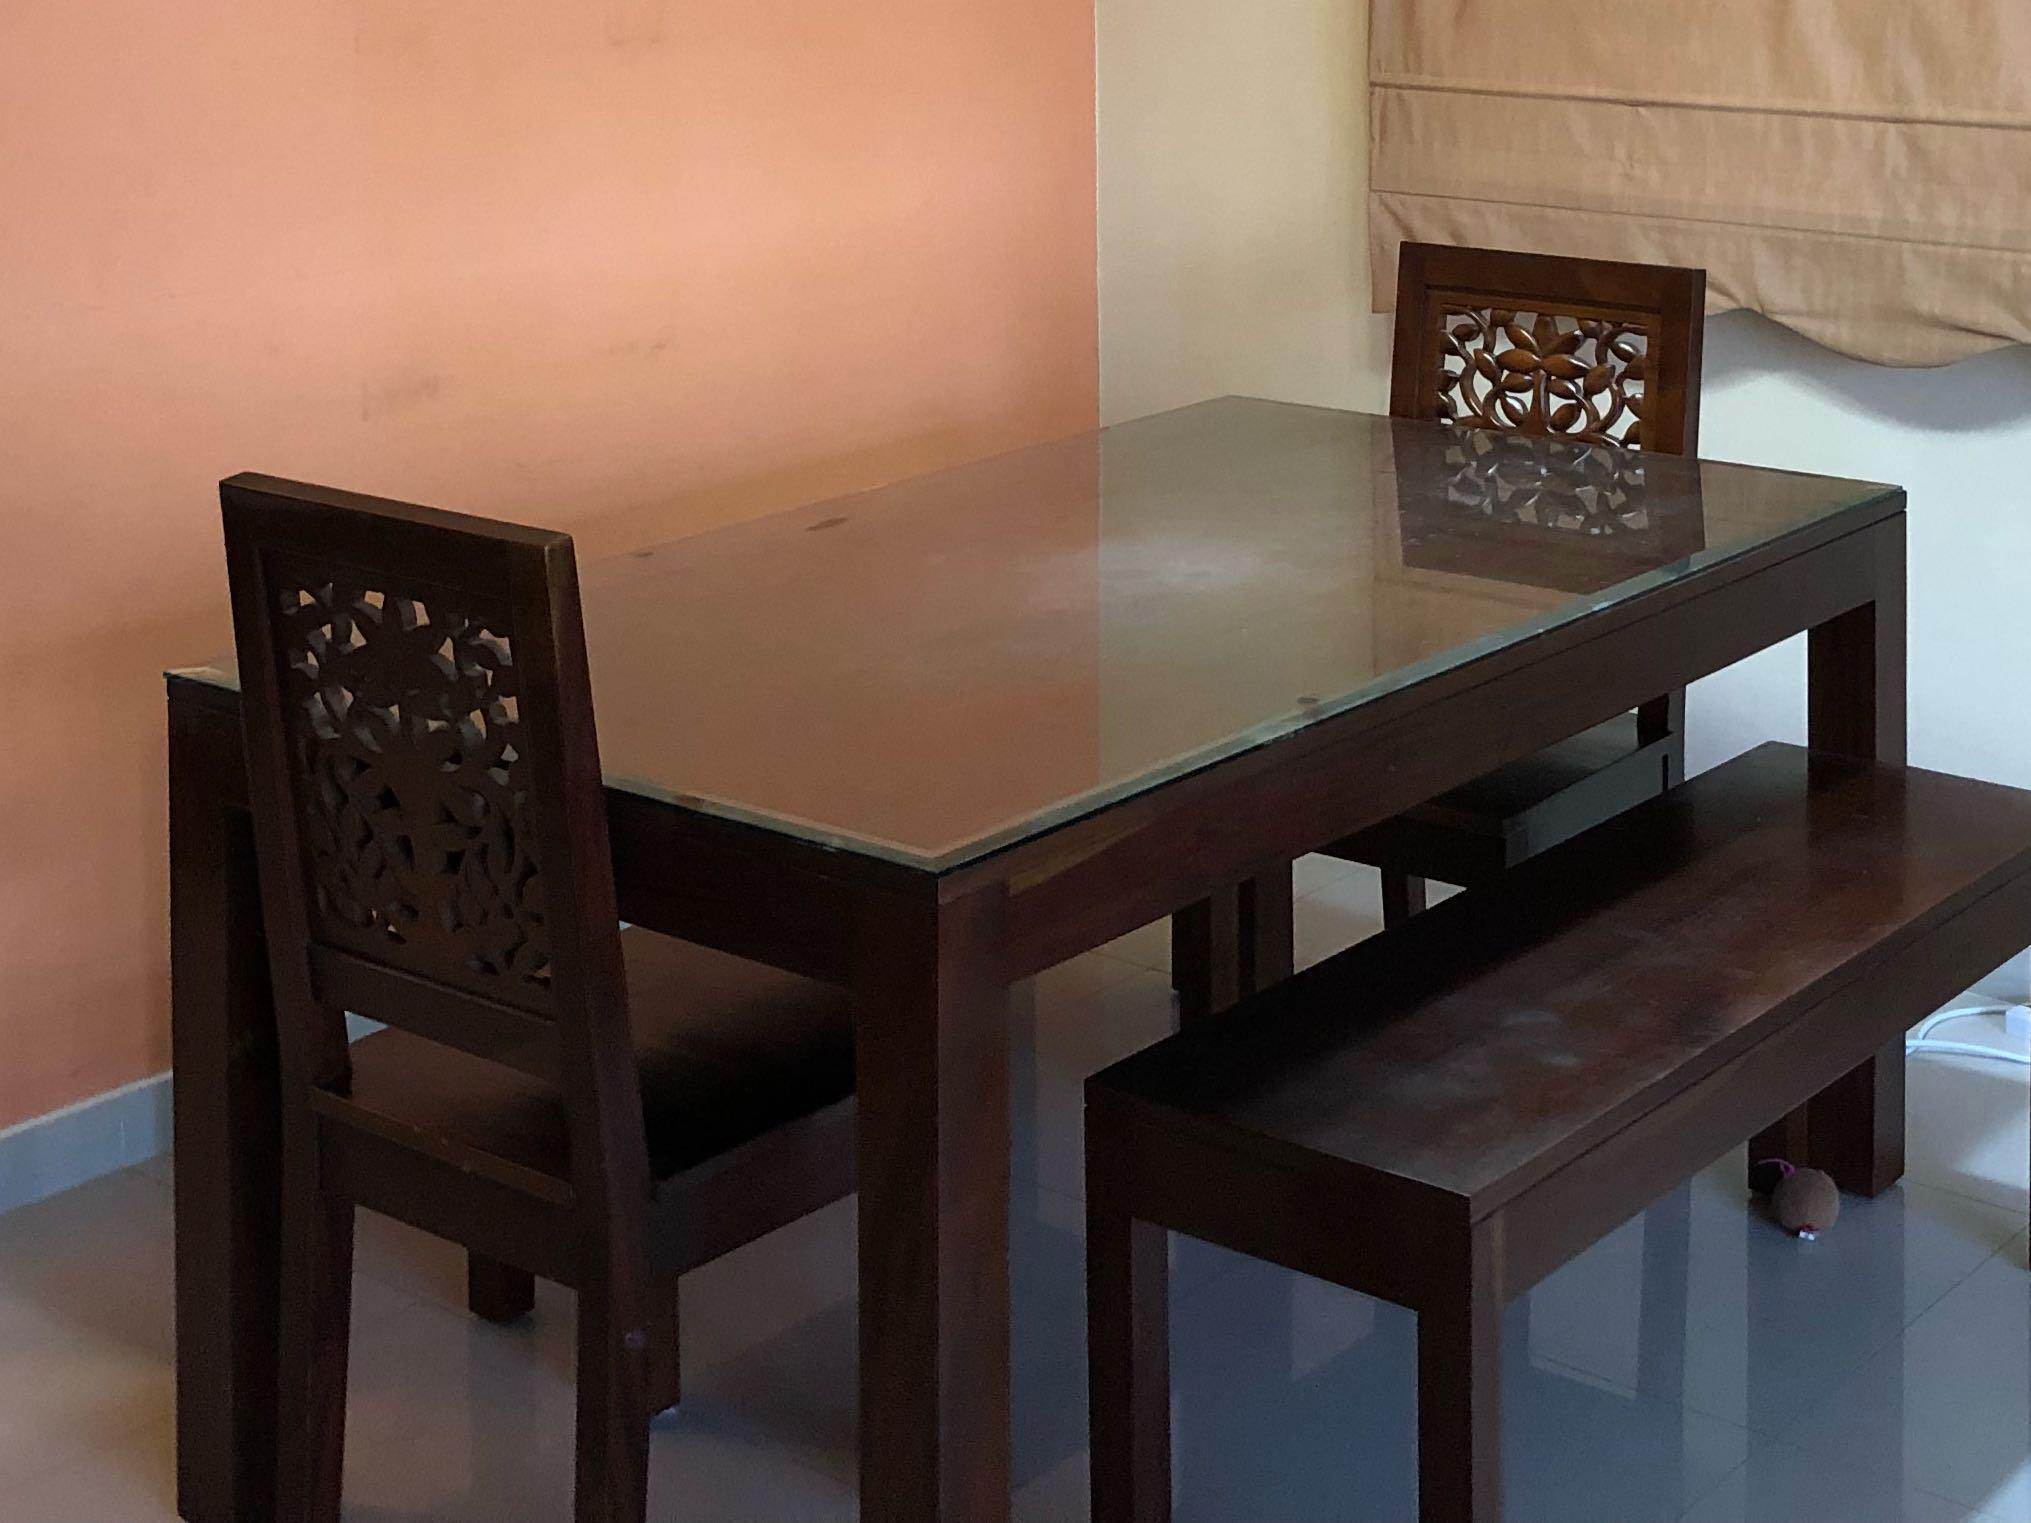 Wood Carving Chairs Bench Furniture